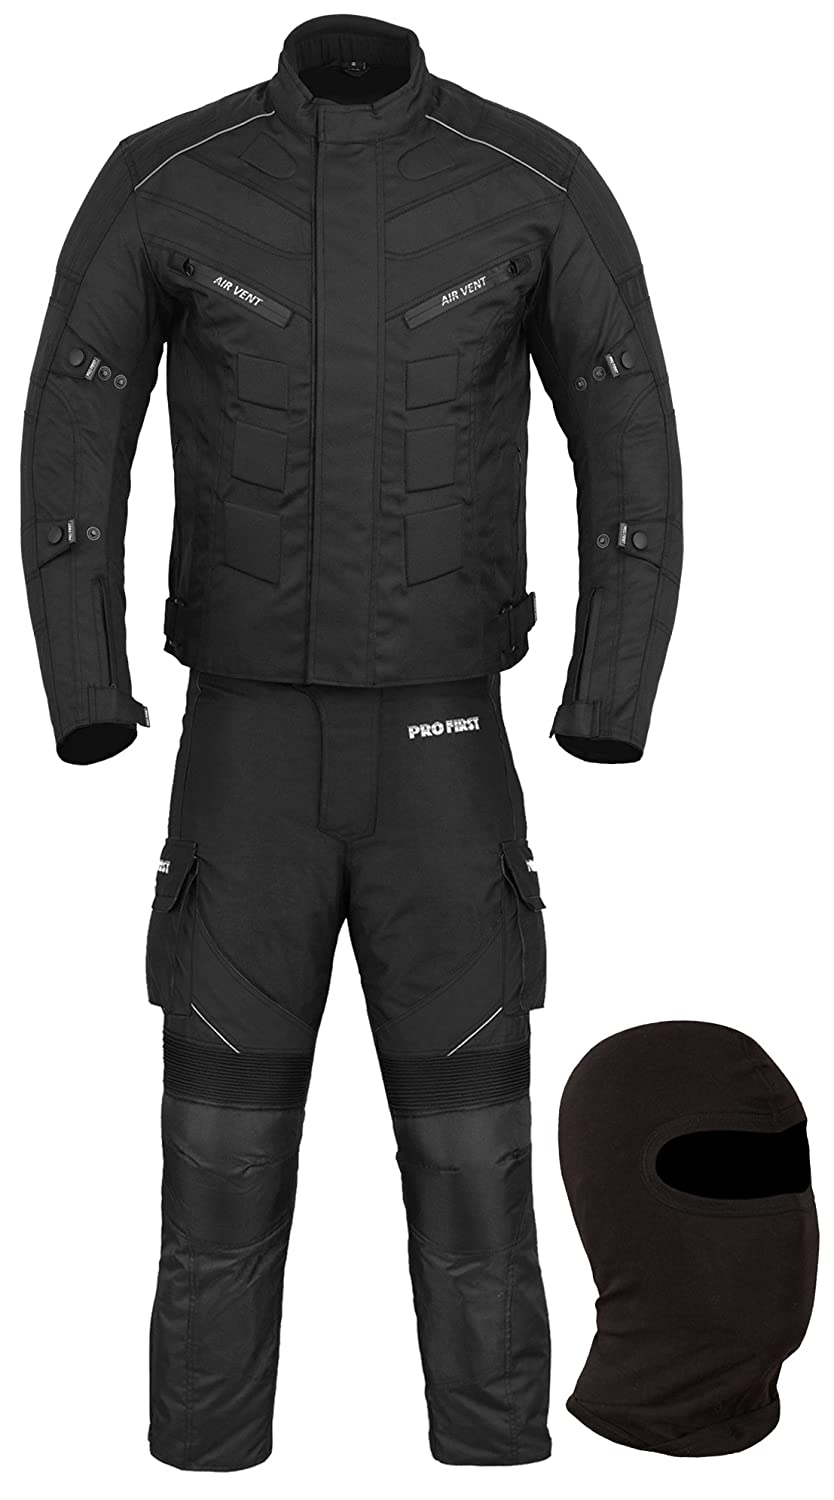 JKT-007 Waterproof Motorbike Motorcycle Jacket in Cordura Fabric and CE Approved Armour 6 Packs Design Most Popular Black /& Full Black, 2X-Large